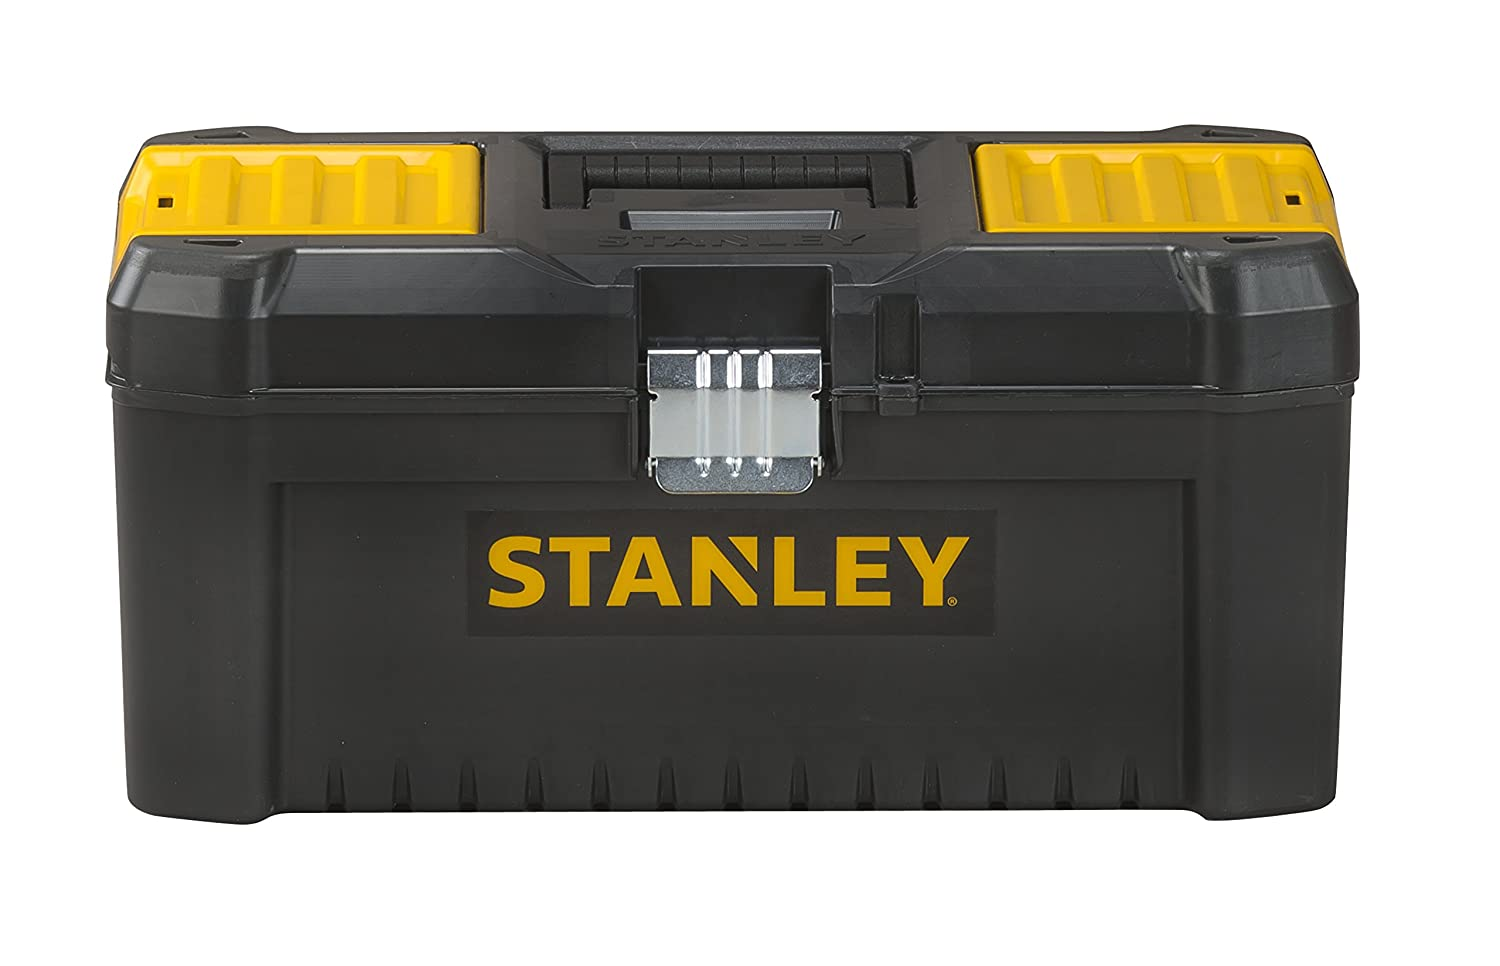 Stanley STST1-75518 Essential 16 Toolbox with Metal latches, Black/Yellow, Inch